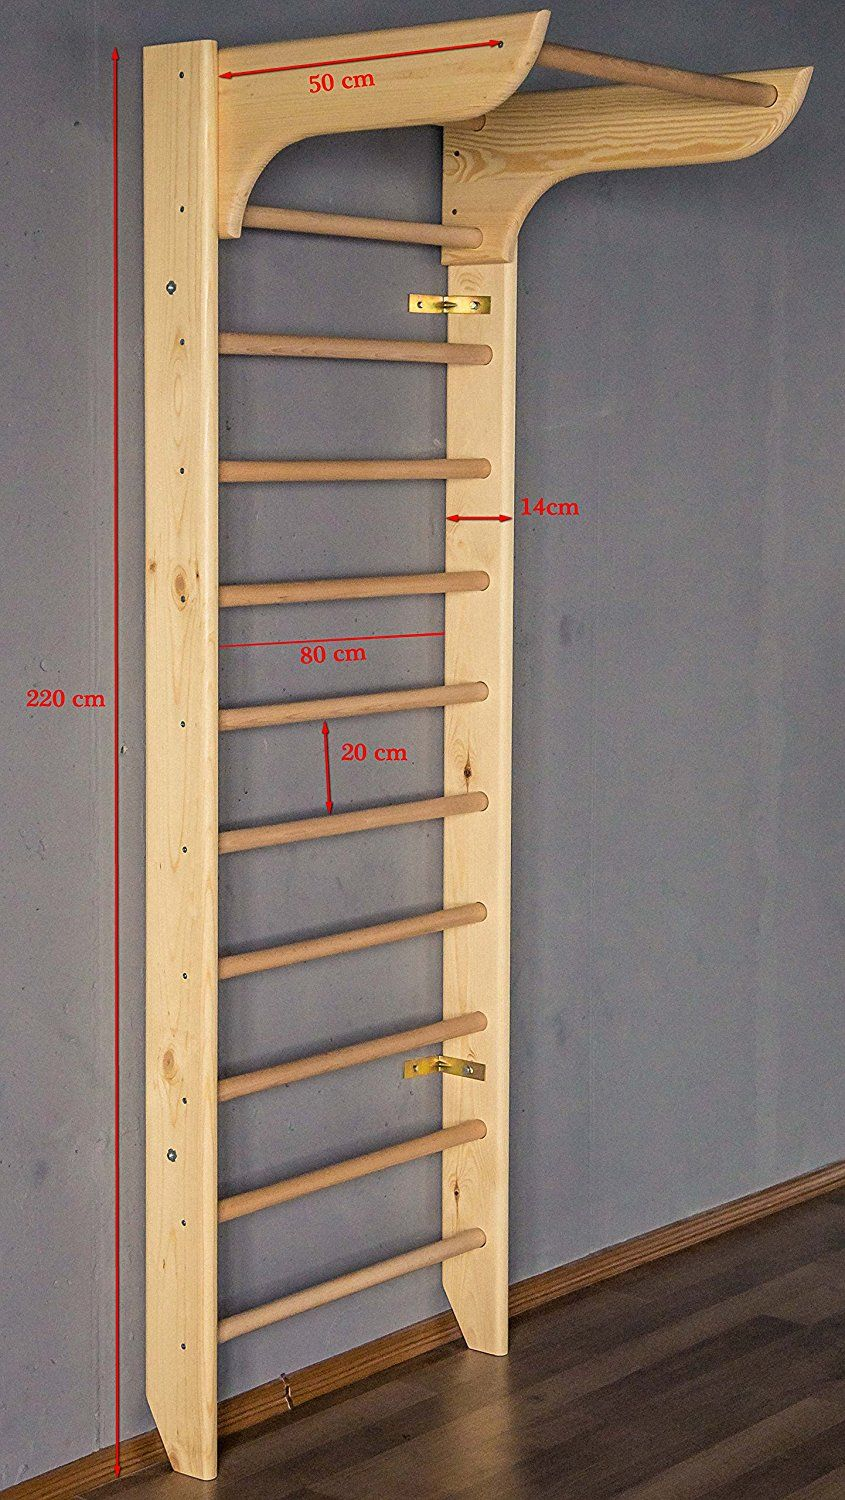 Bar2fit Wooden Wall Bars Stall For Home Fitness And Exercising